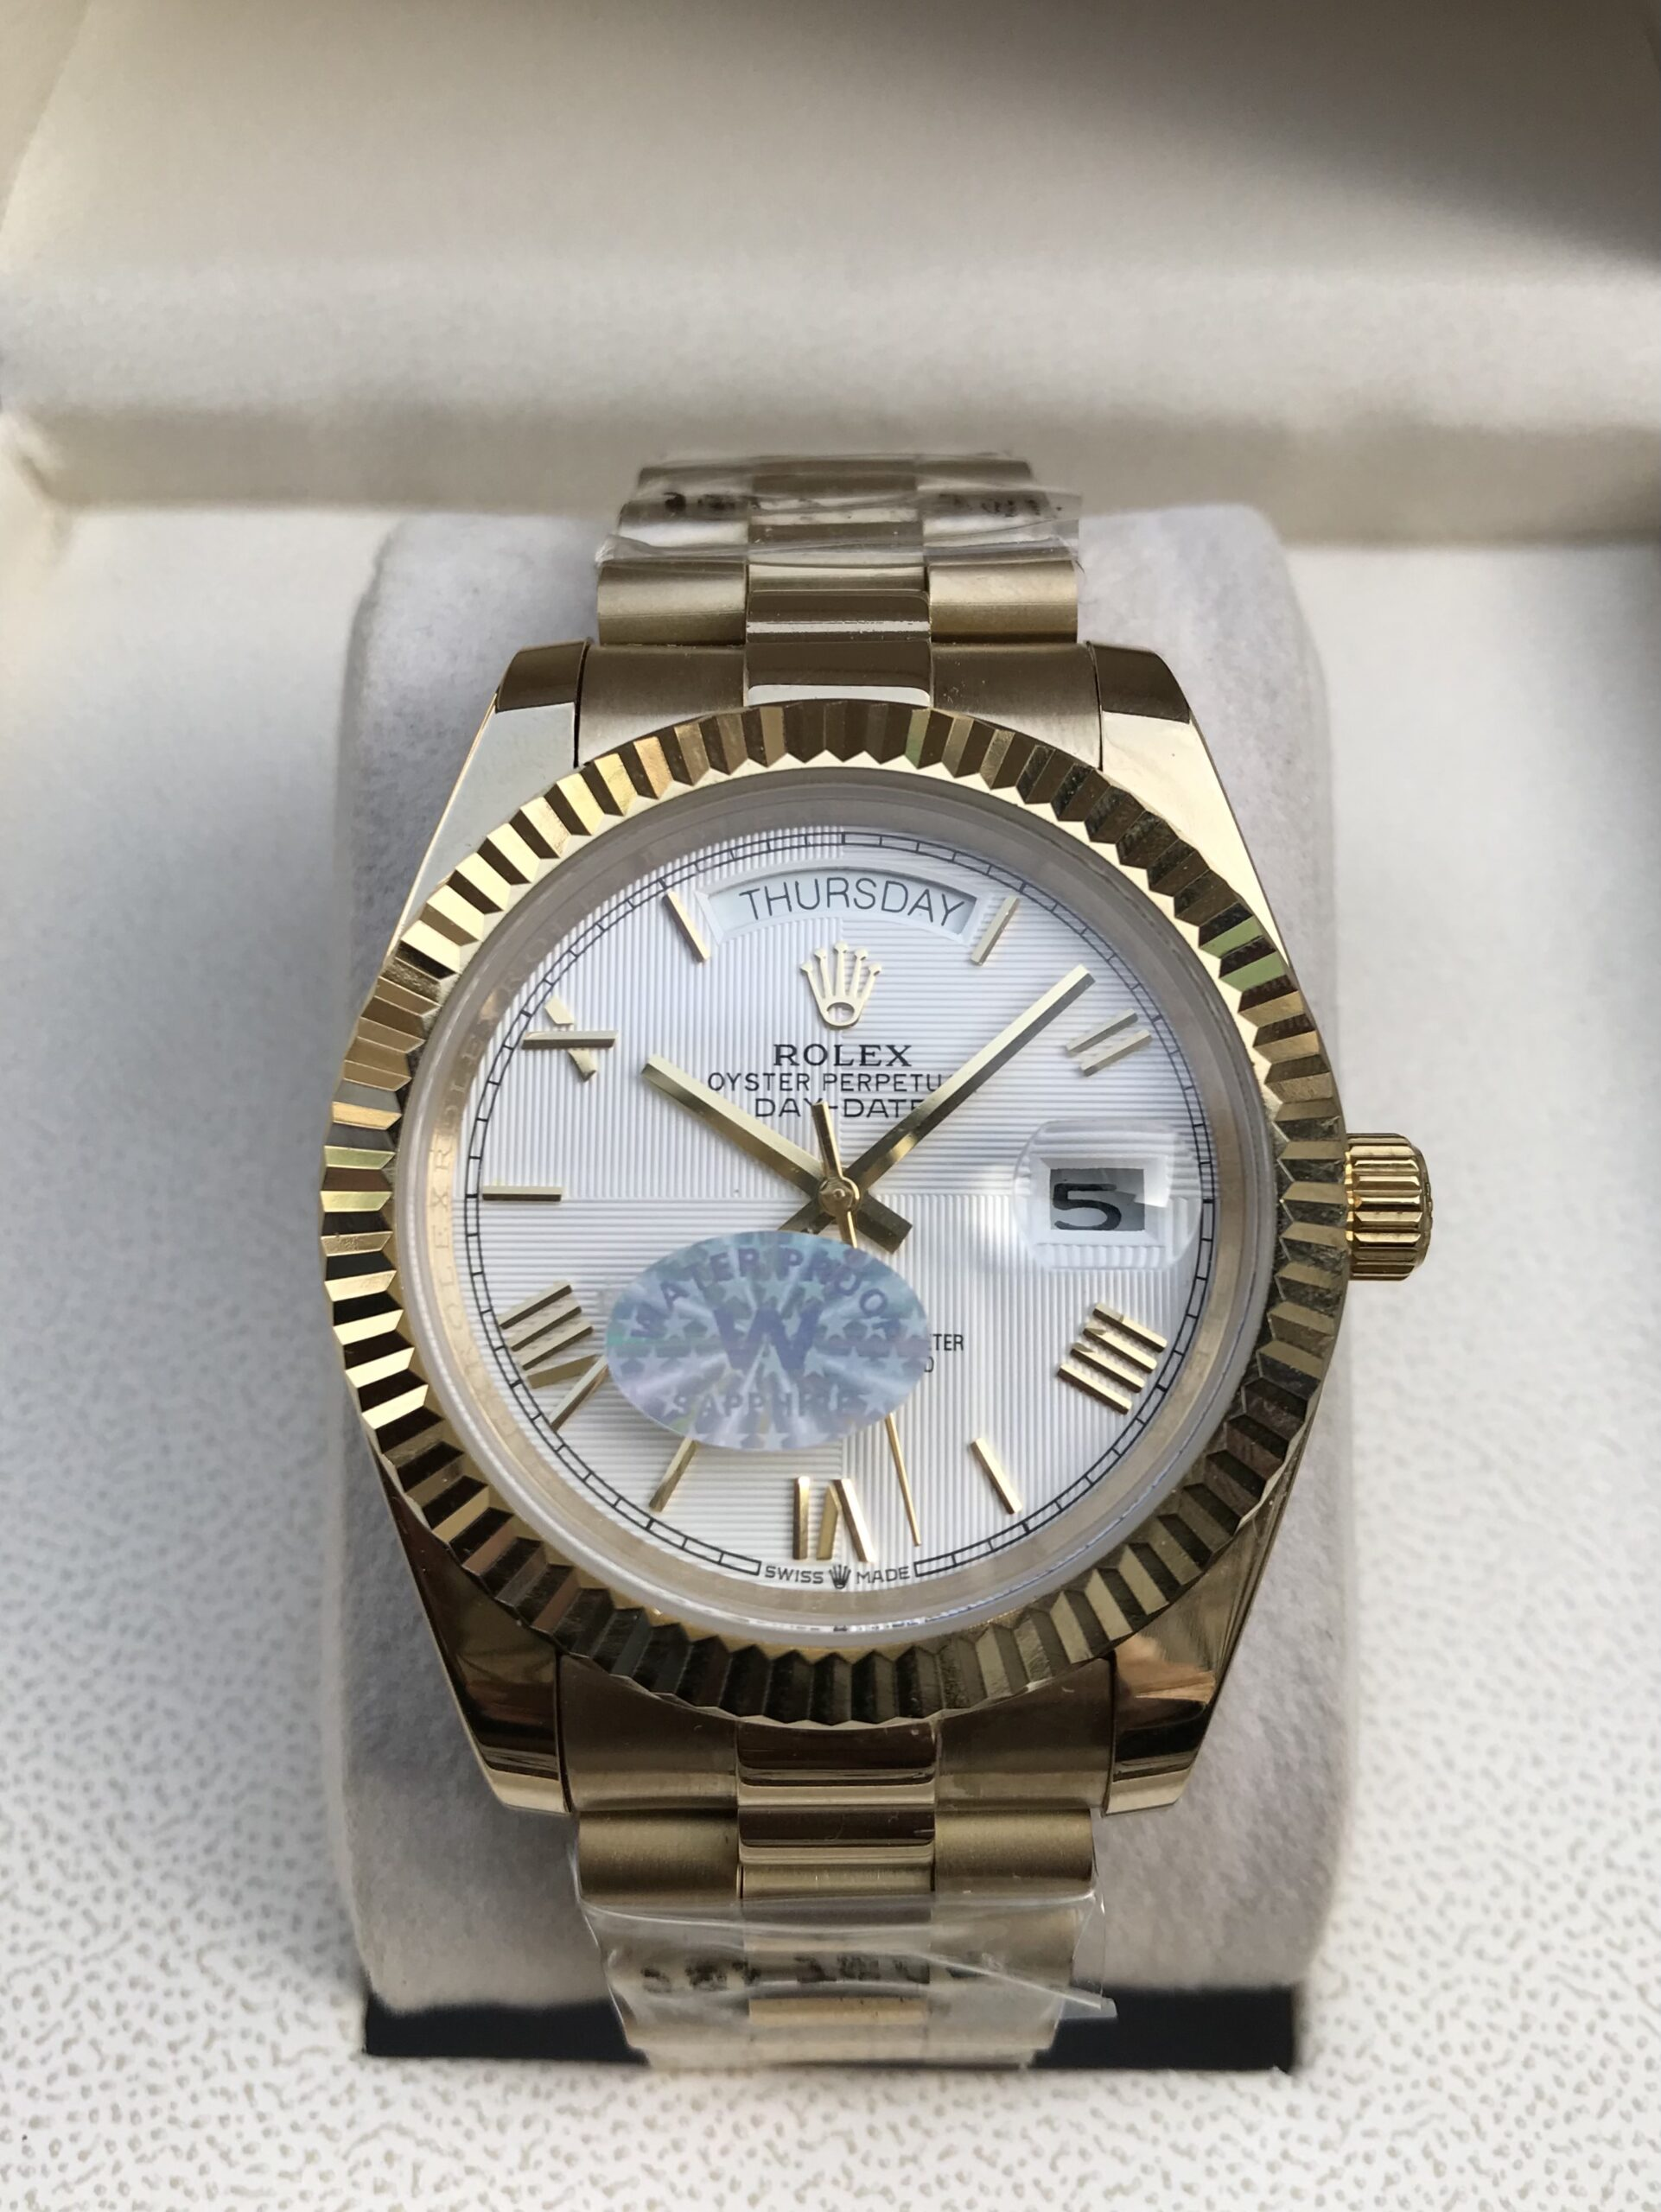 Rolex Oyster Perpetual Day Date Watch